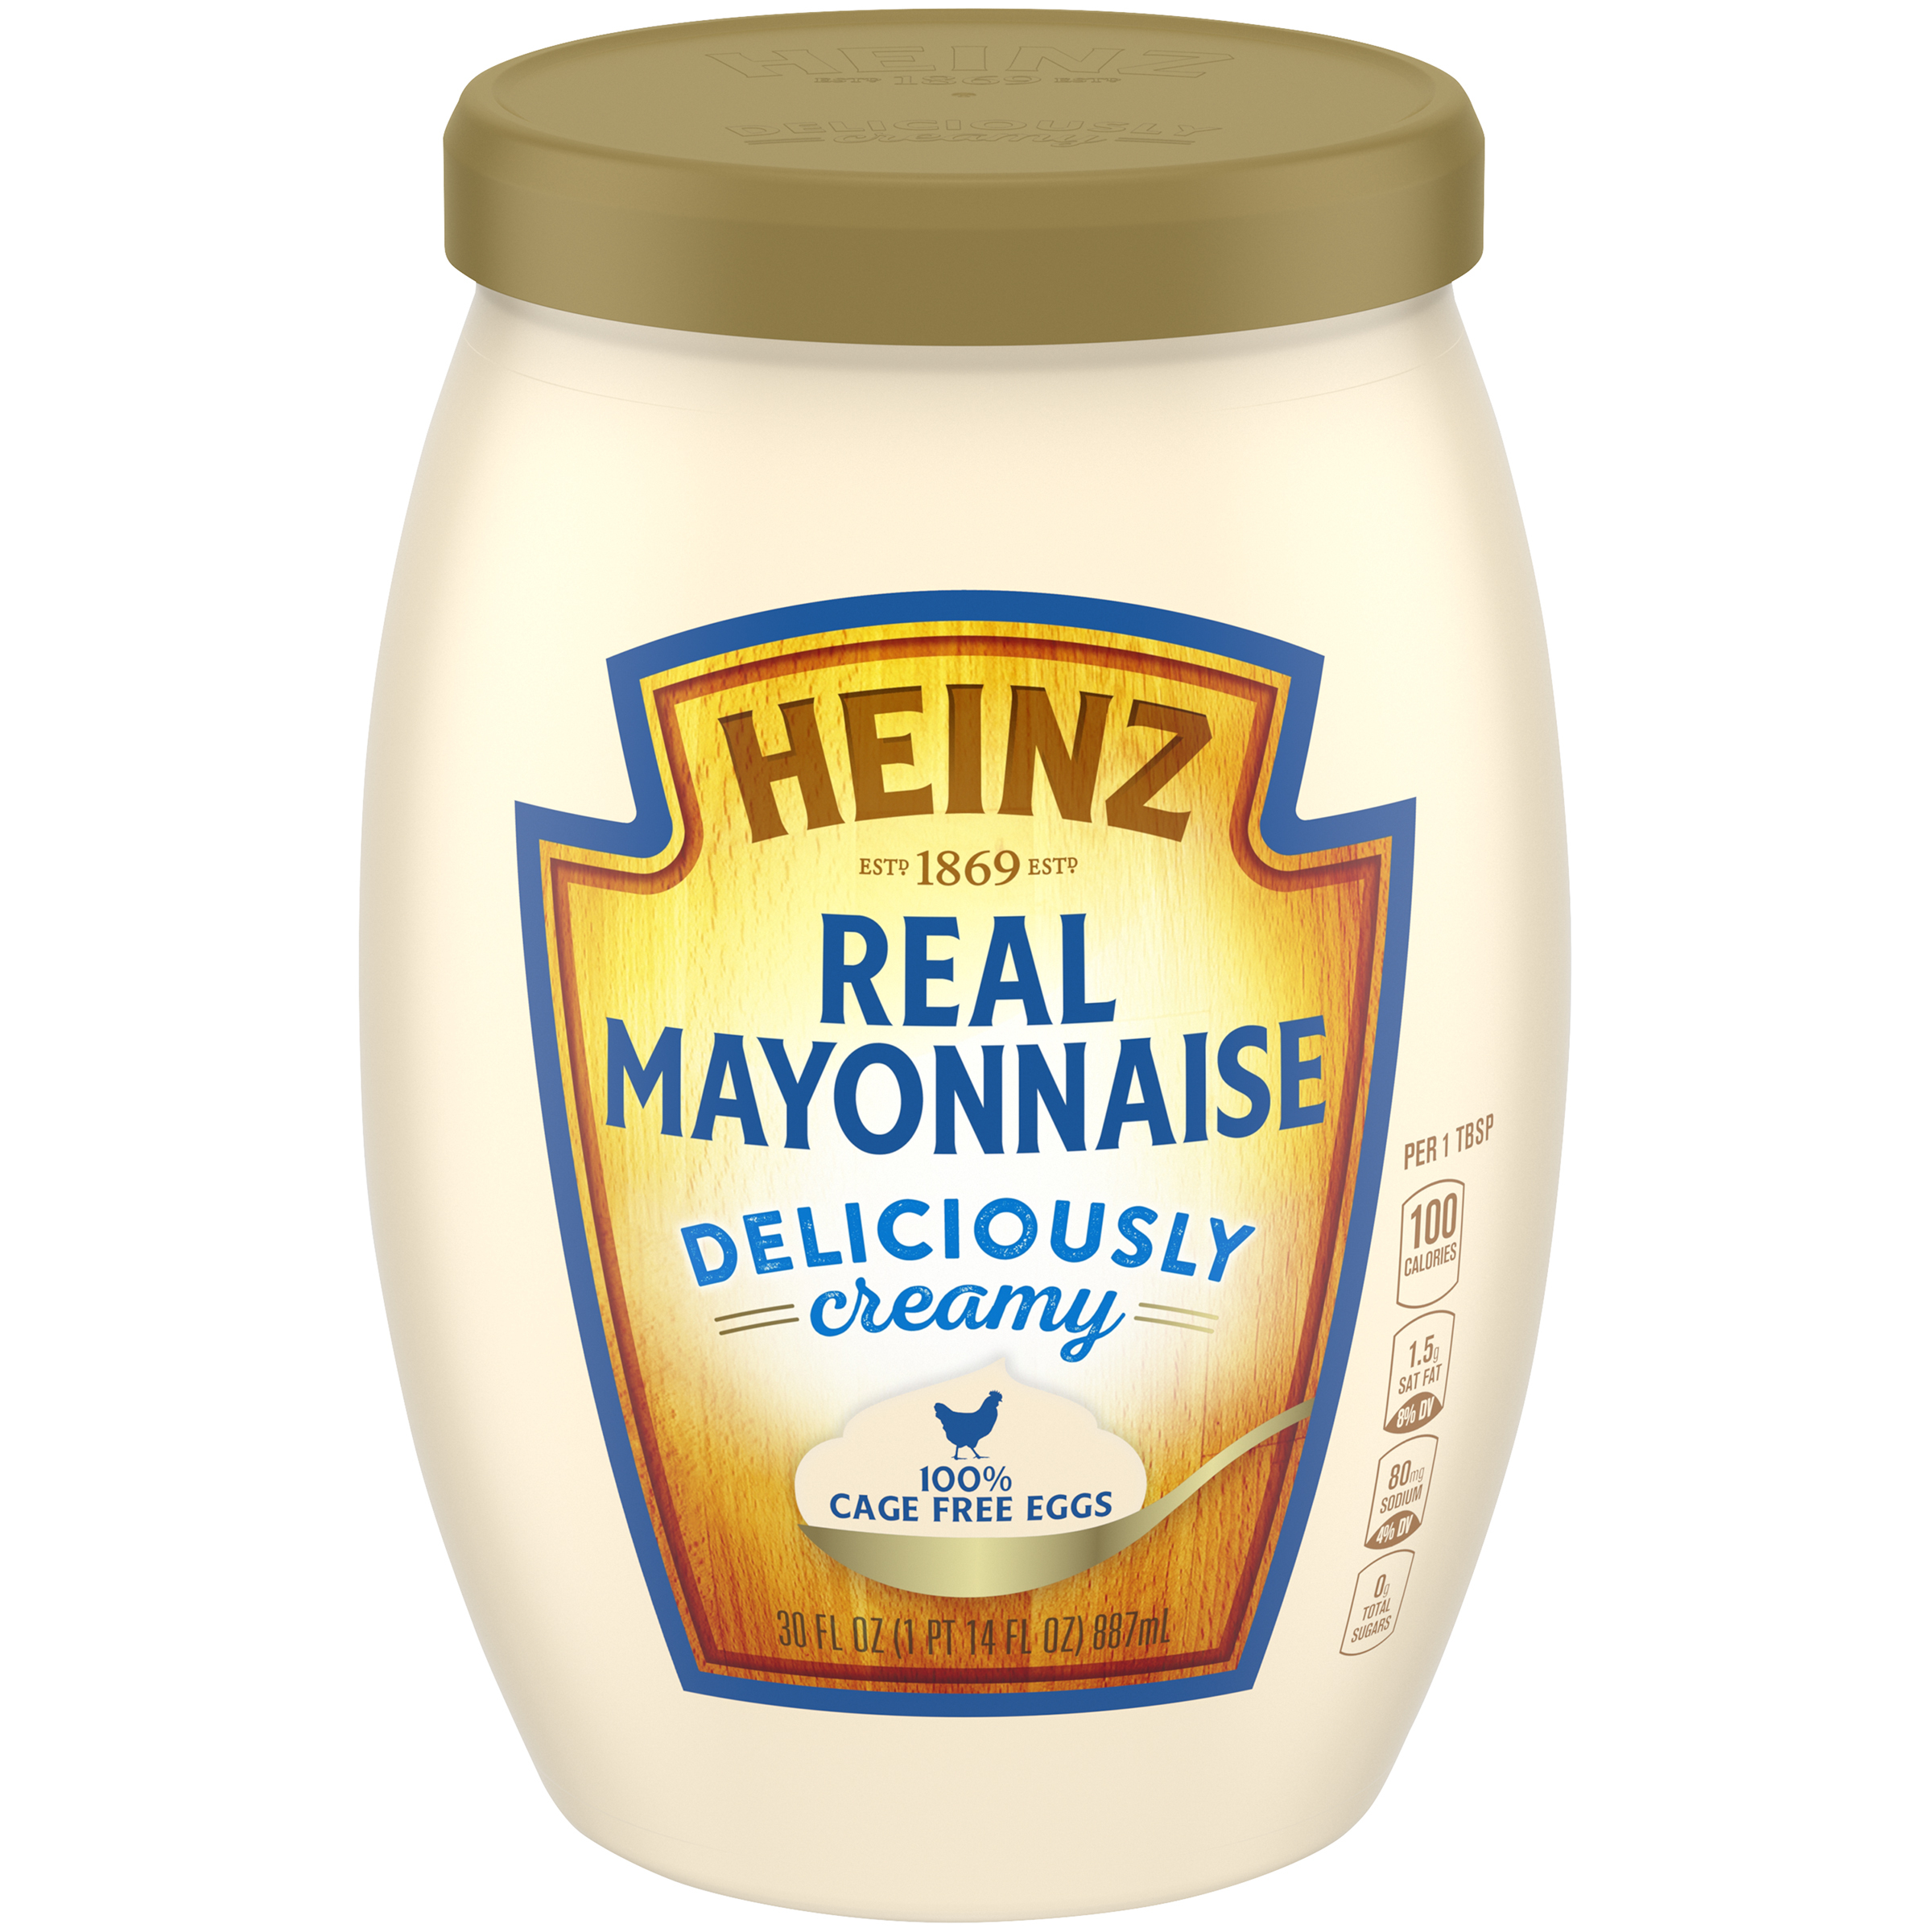 Heinz Real Mayonnaise - 100% Cage Free Eggs (30 oz.) image